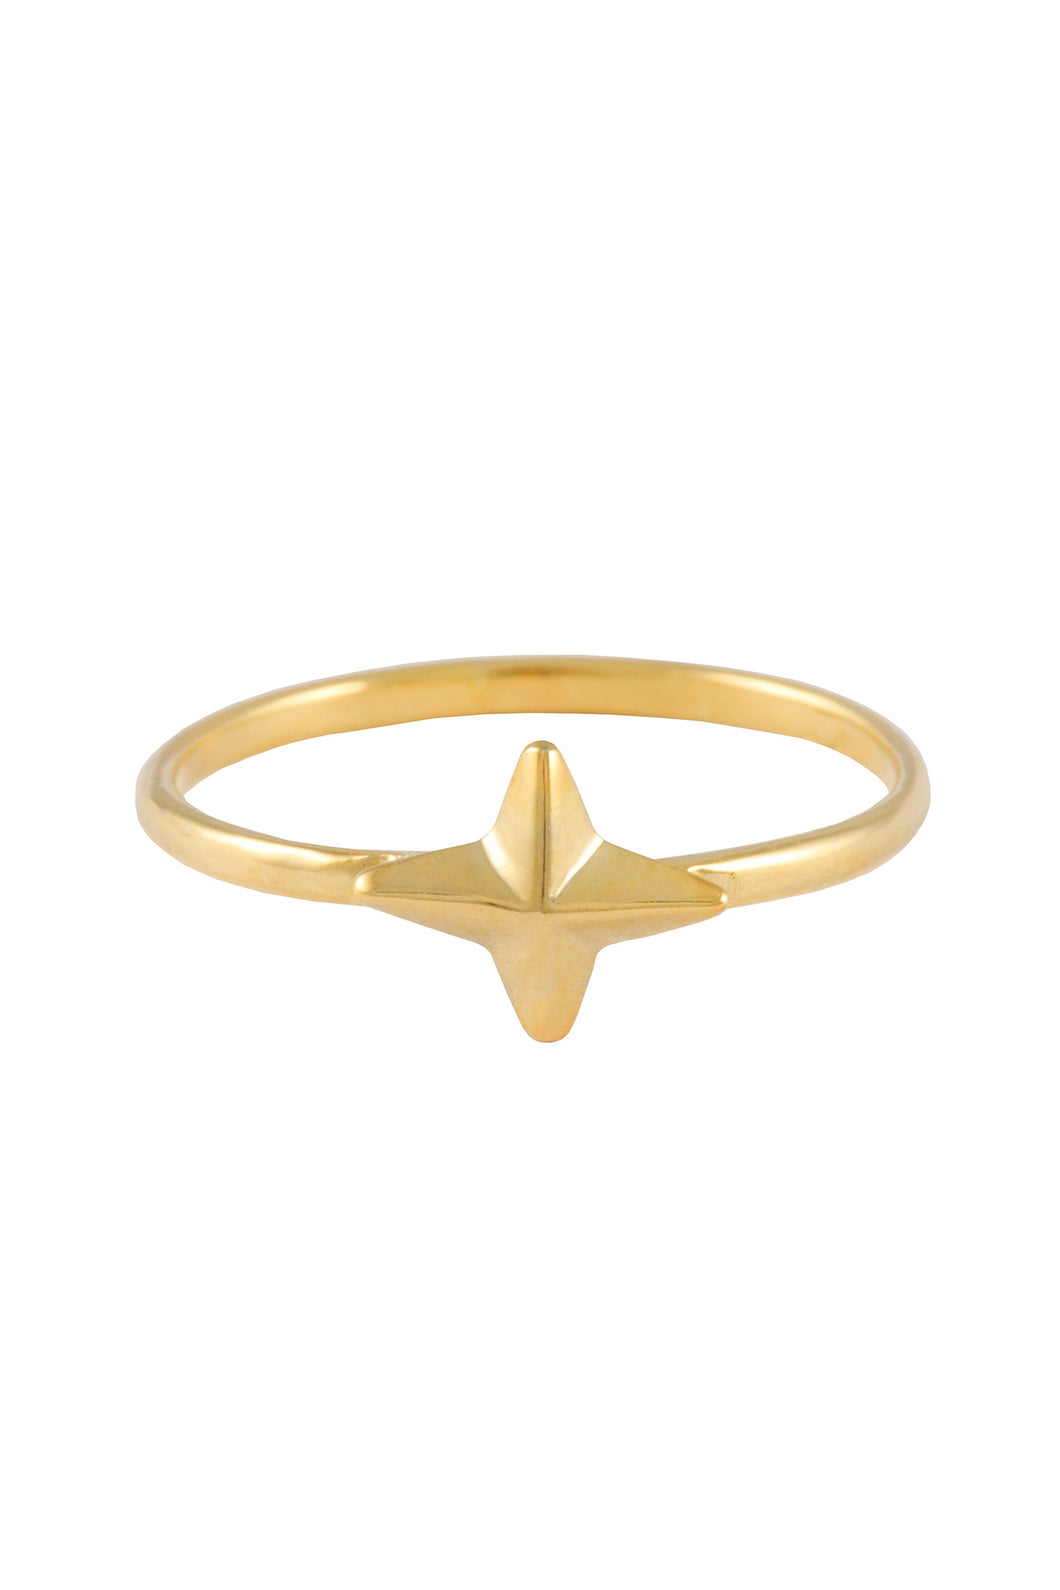 Four pointed star ring. Silver, gold plated